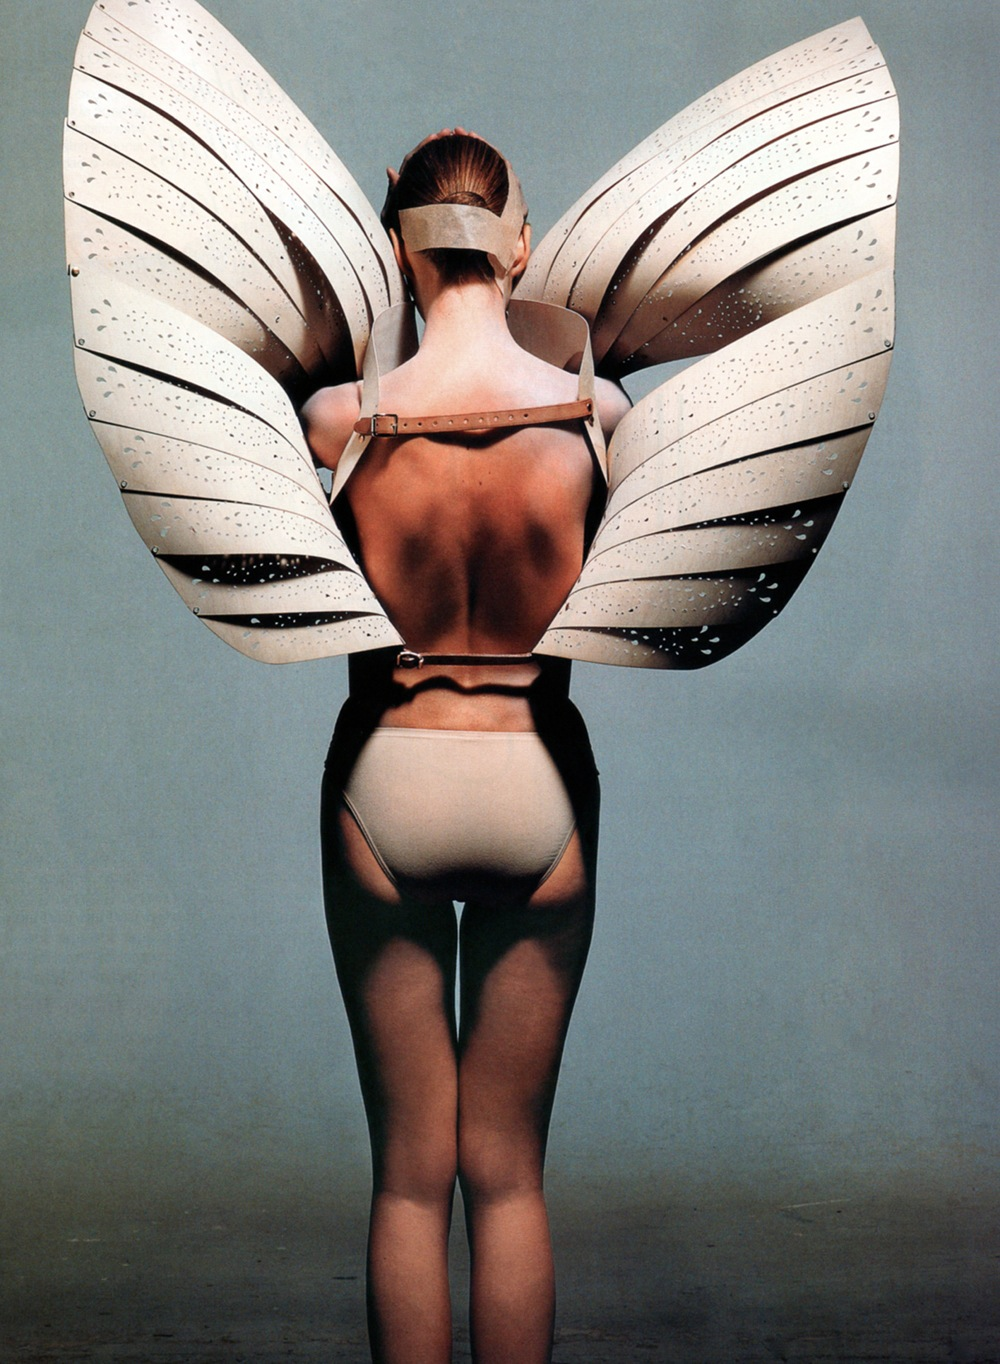 Alexander McQueen S/S 1999 photographed by Irving Penn for Vogue US December 2001